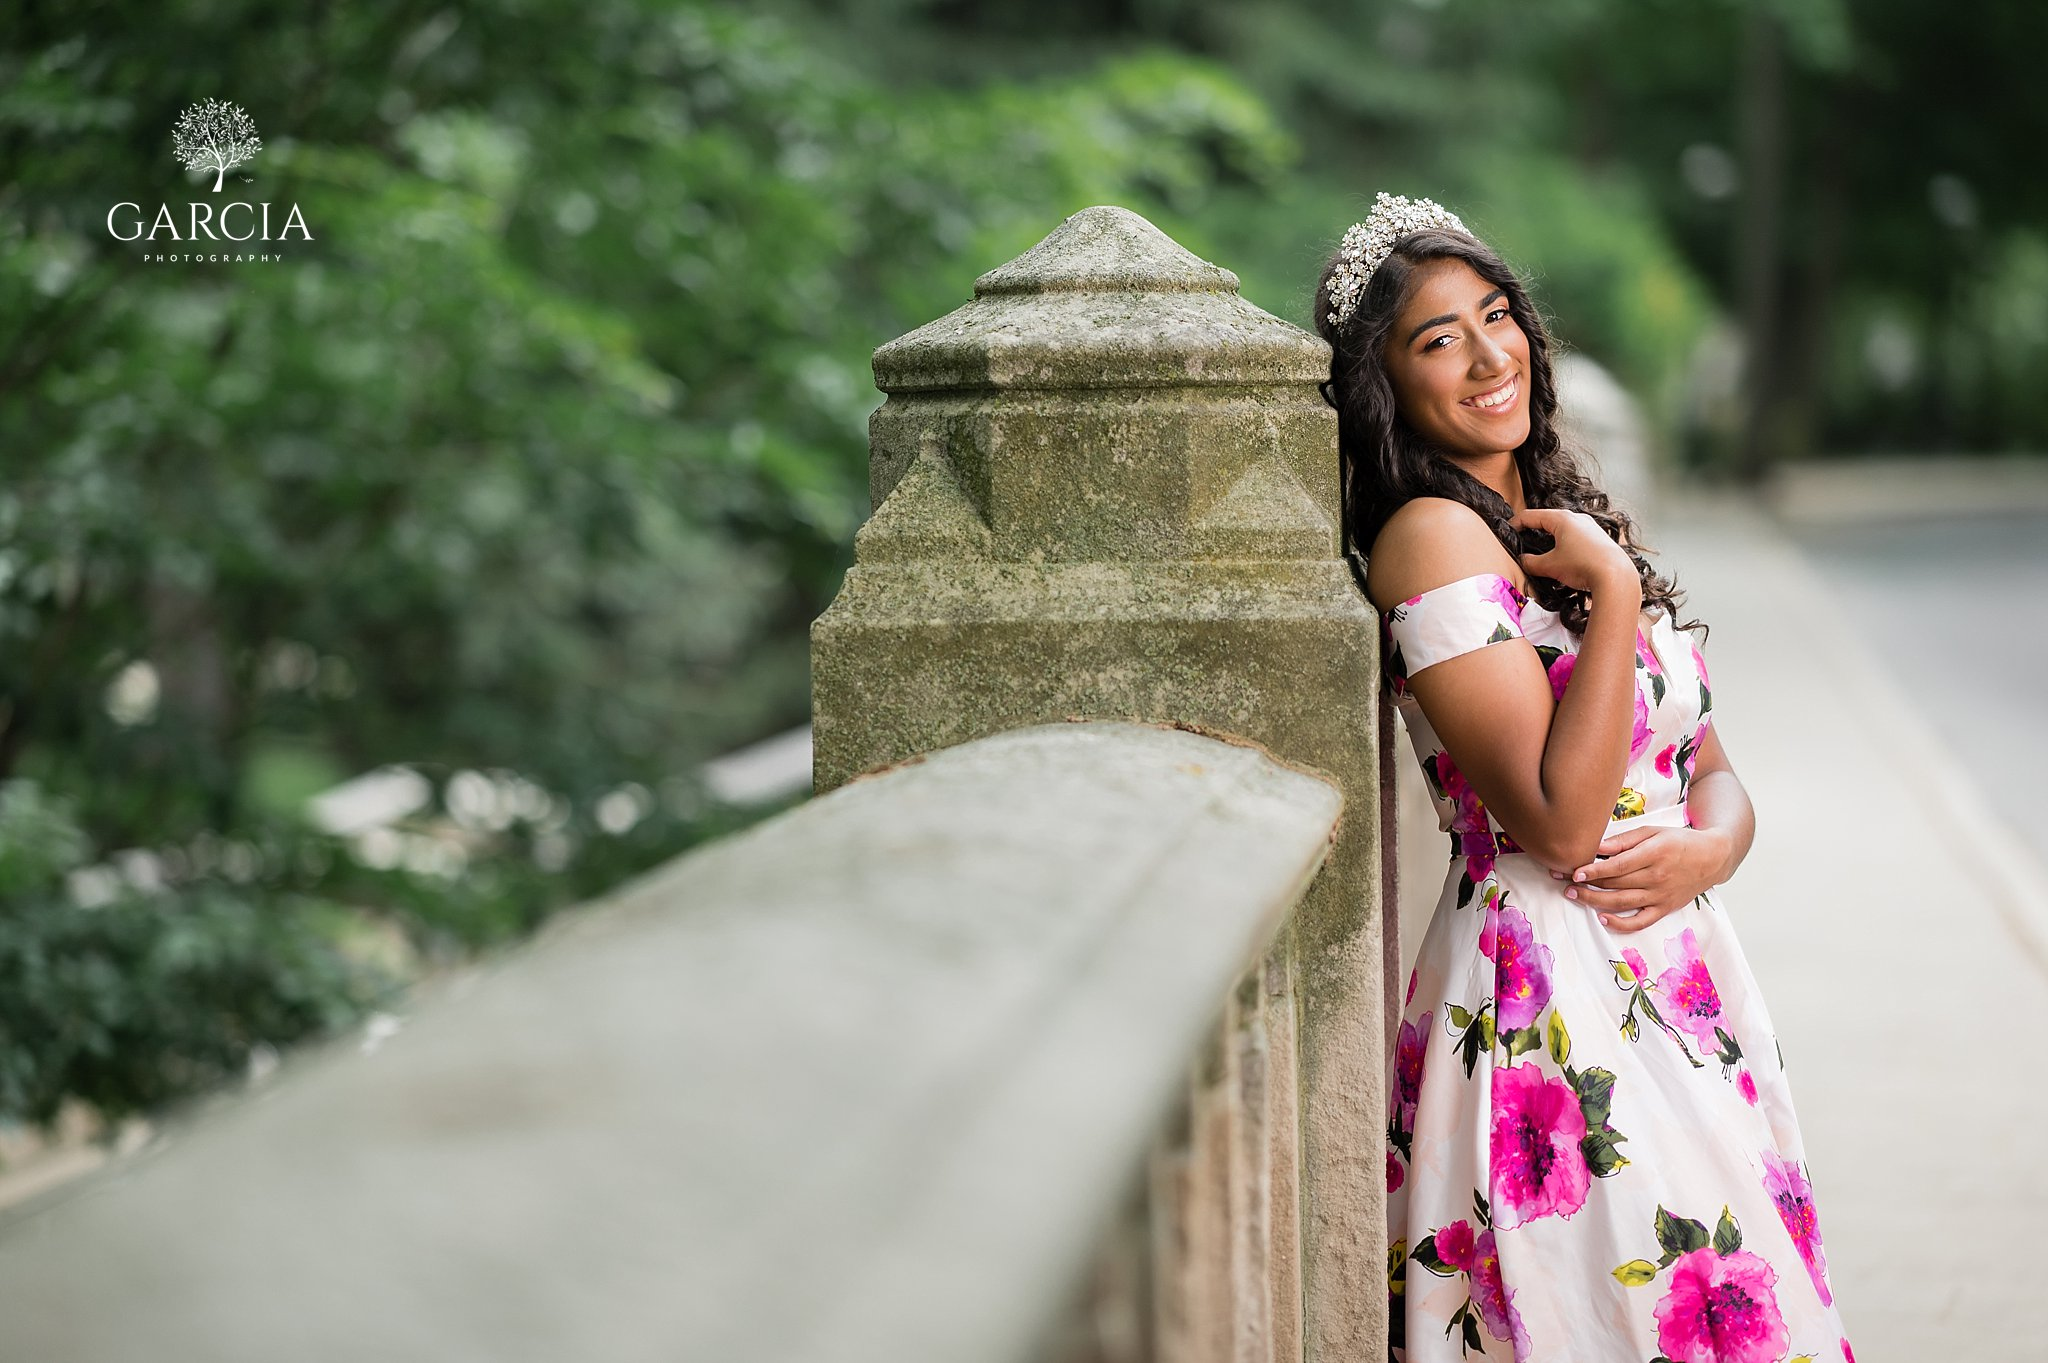 Emily-Quince-Session-Garcia-Photography-7725.jpg